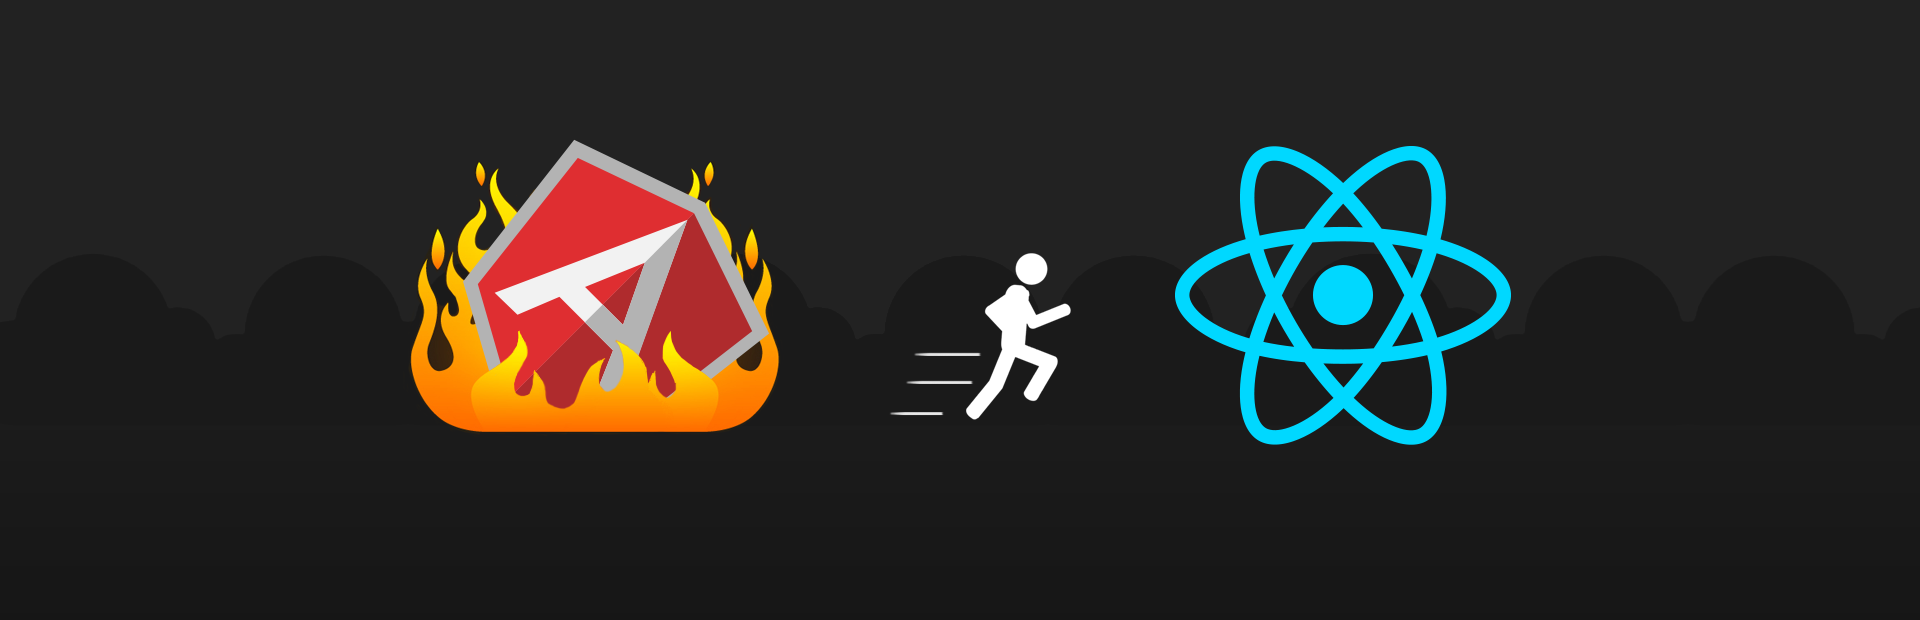 How to migrate an application from AngularJS to React and Redux - By